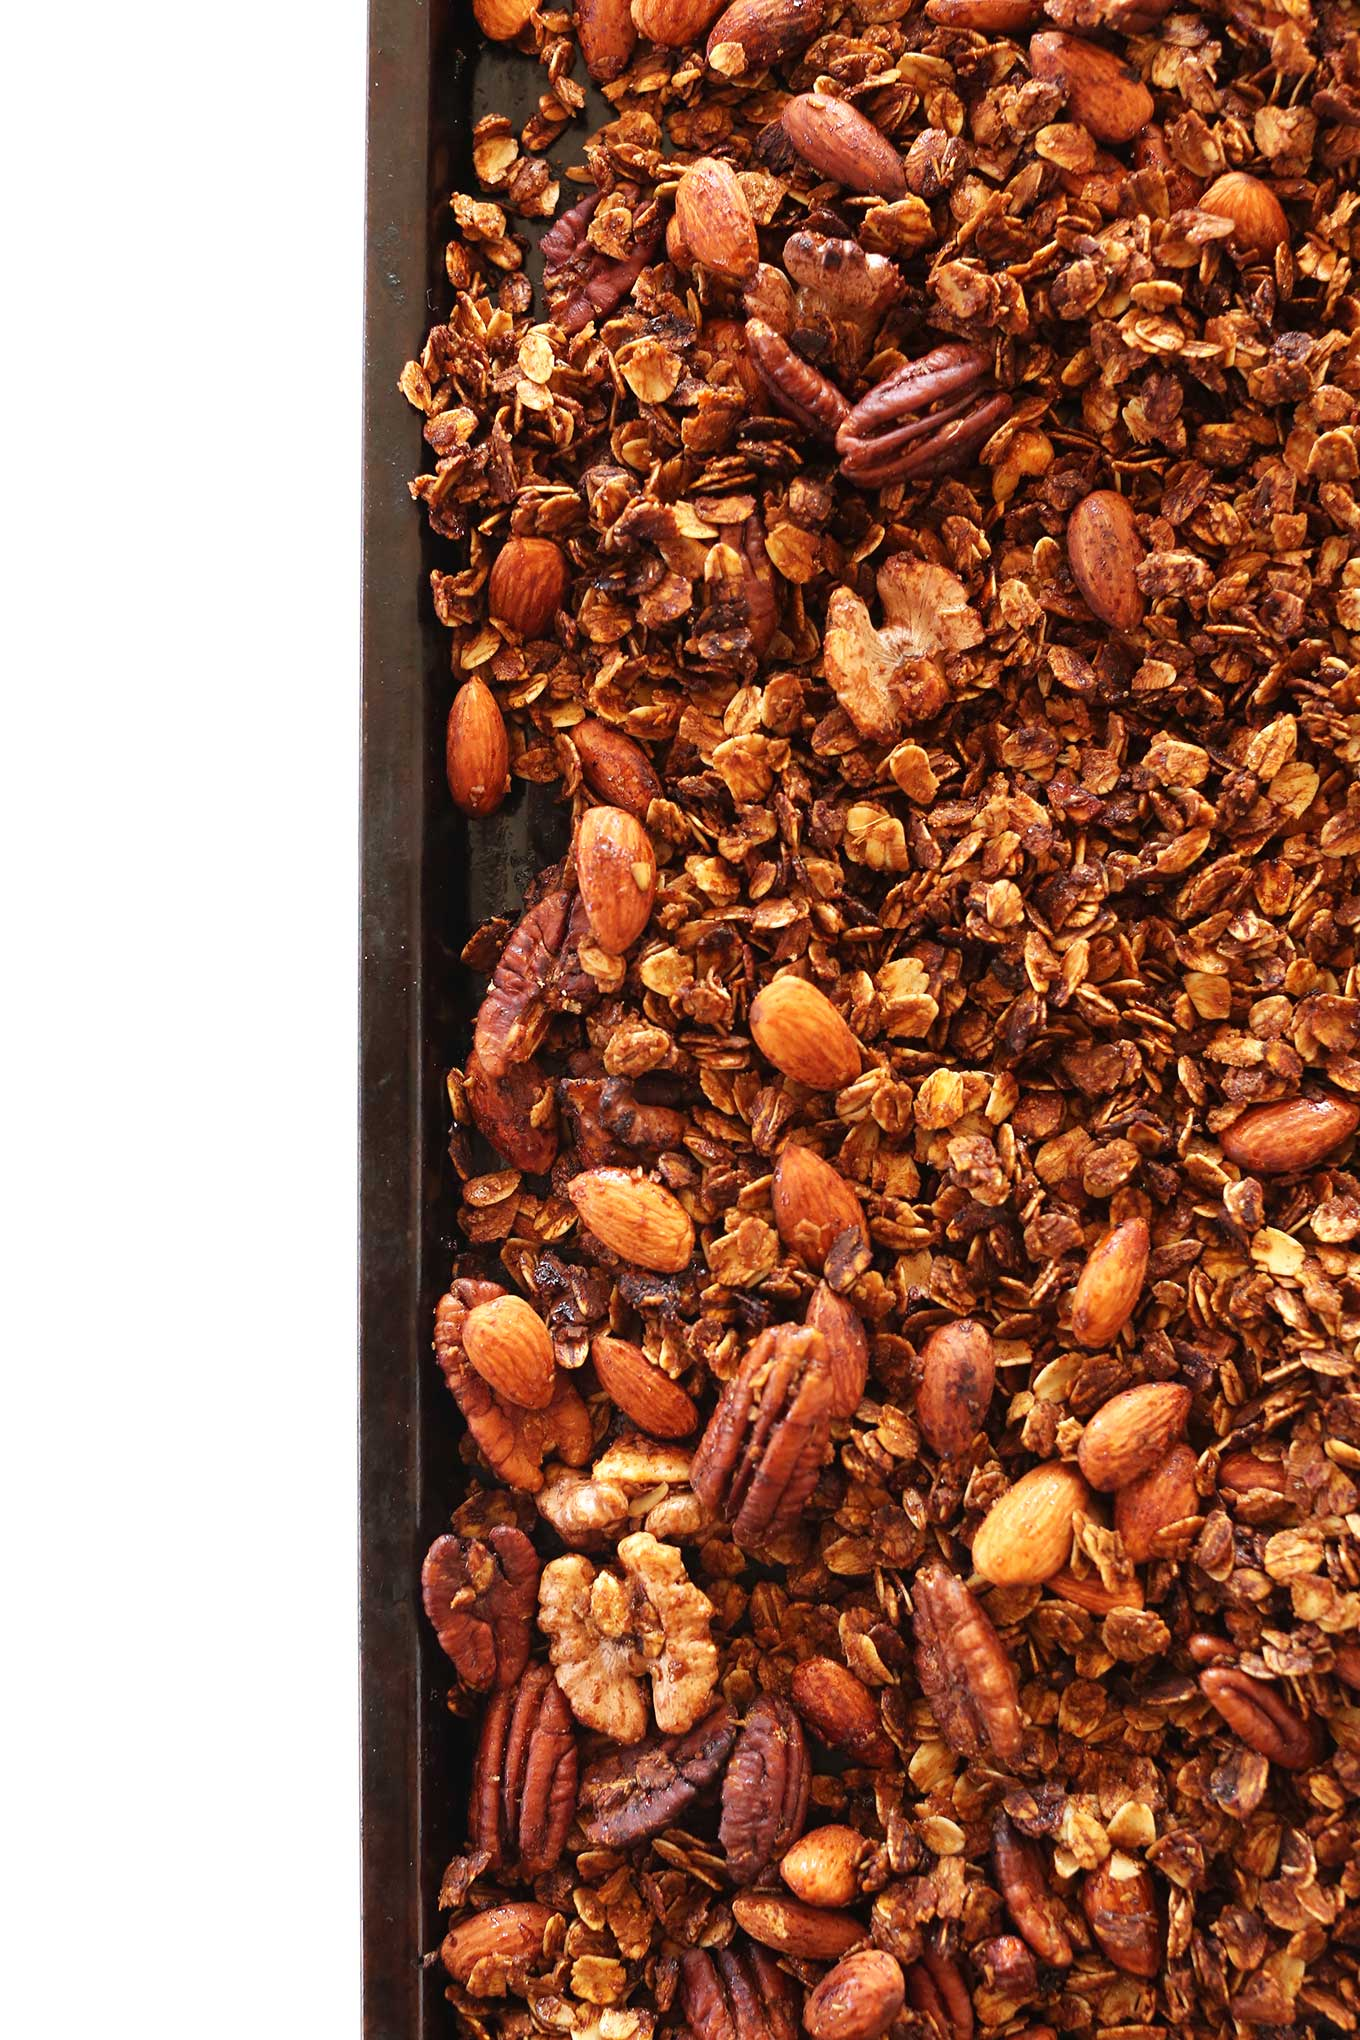 Baking sheet filled with our gluten-free vegan Gingerbread Granola recipe